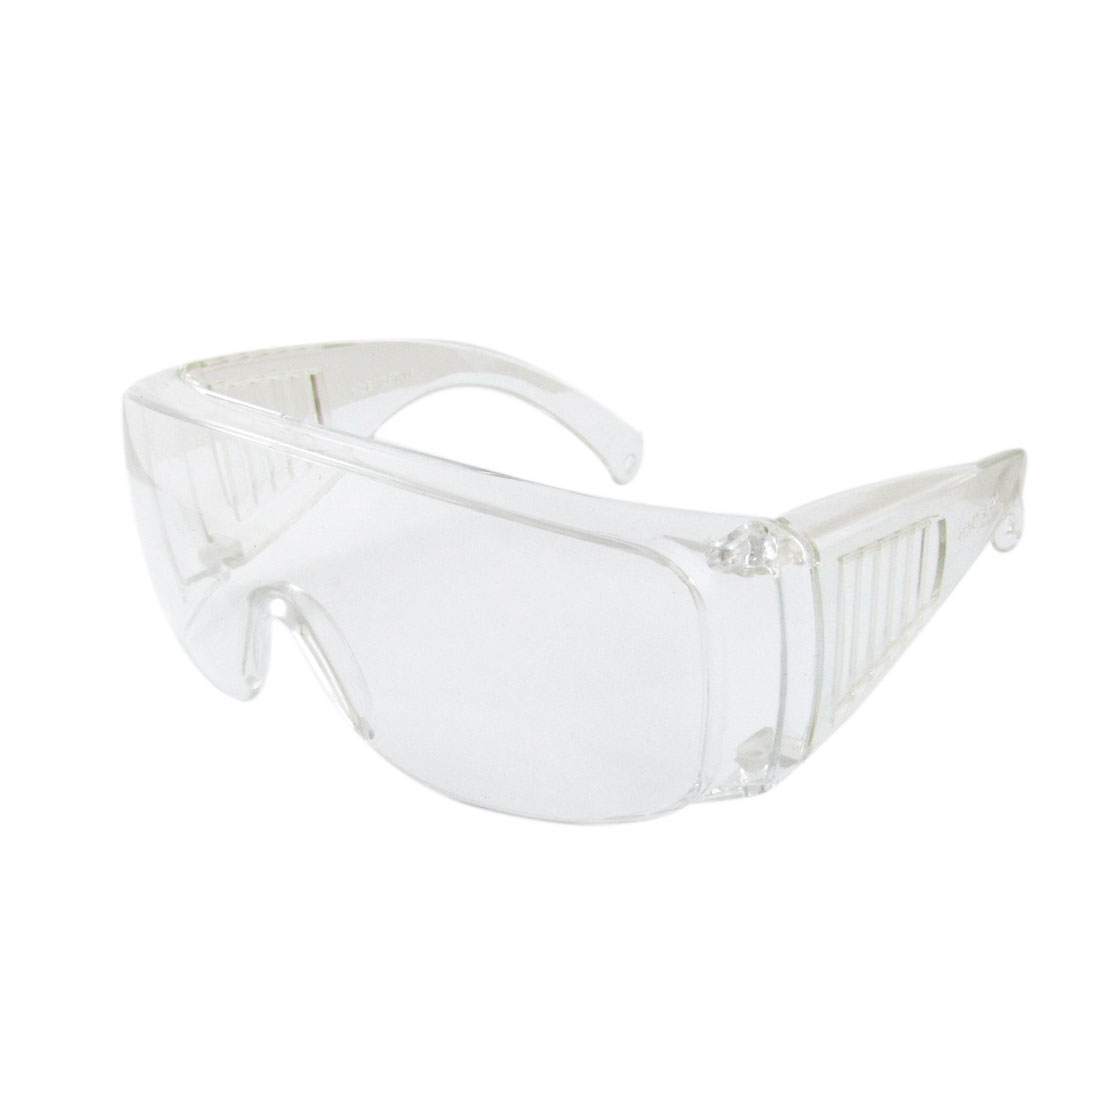 Plastic Frameless Oval Lens Protective Clear Safety Glasses for Men